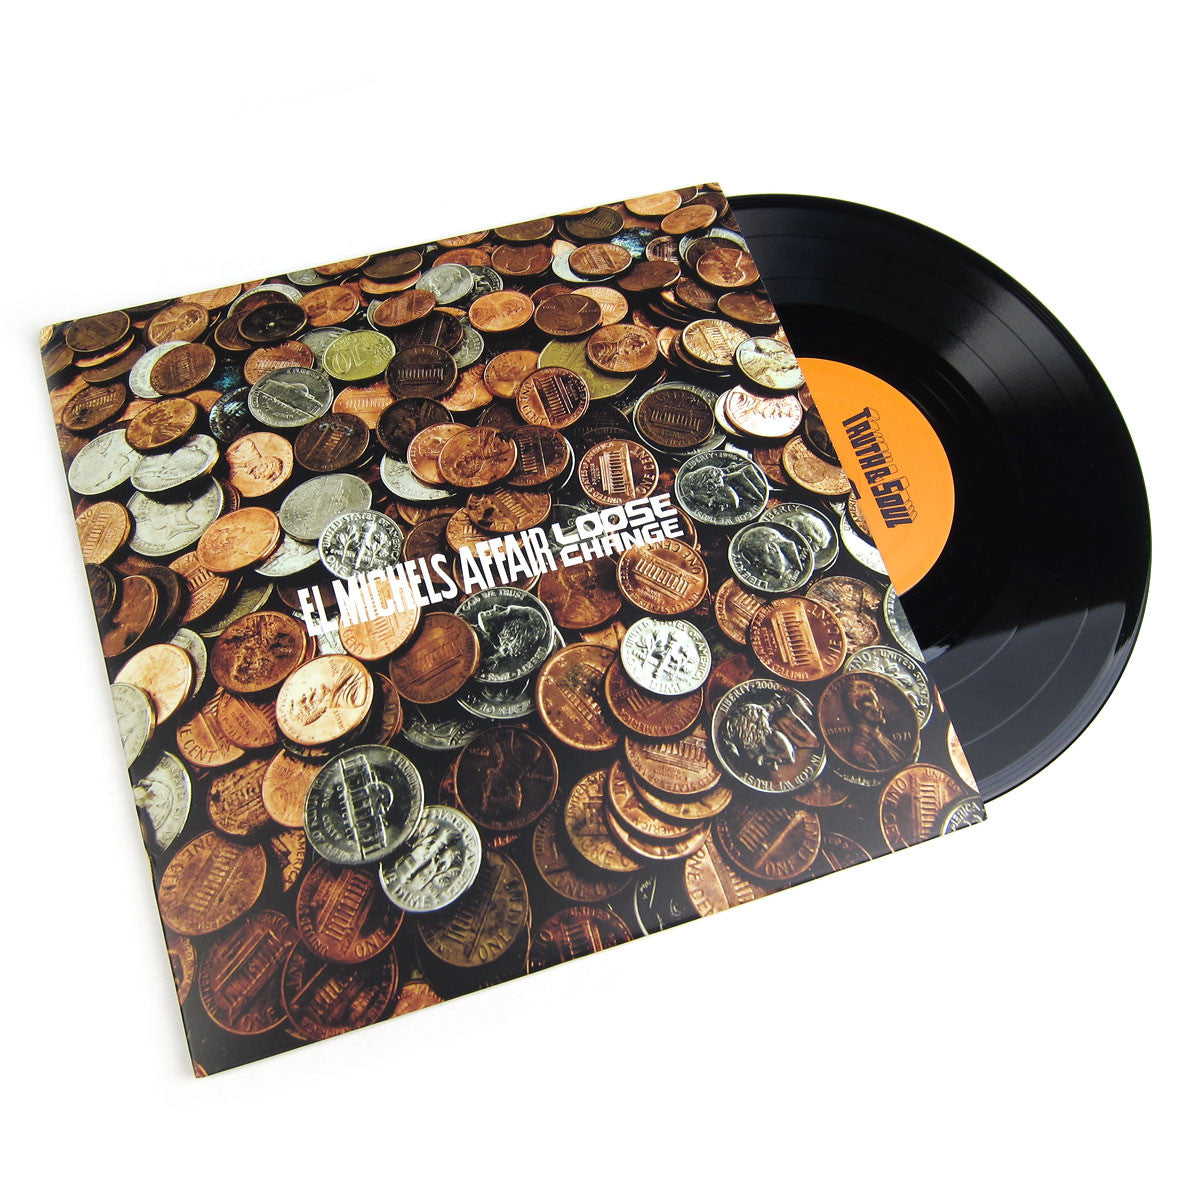 El Michels Affair: Loose Change Vinyl 10""